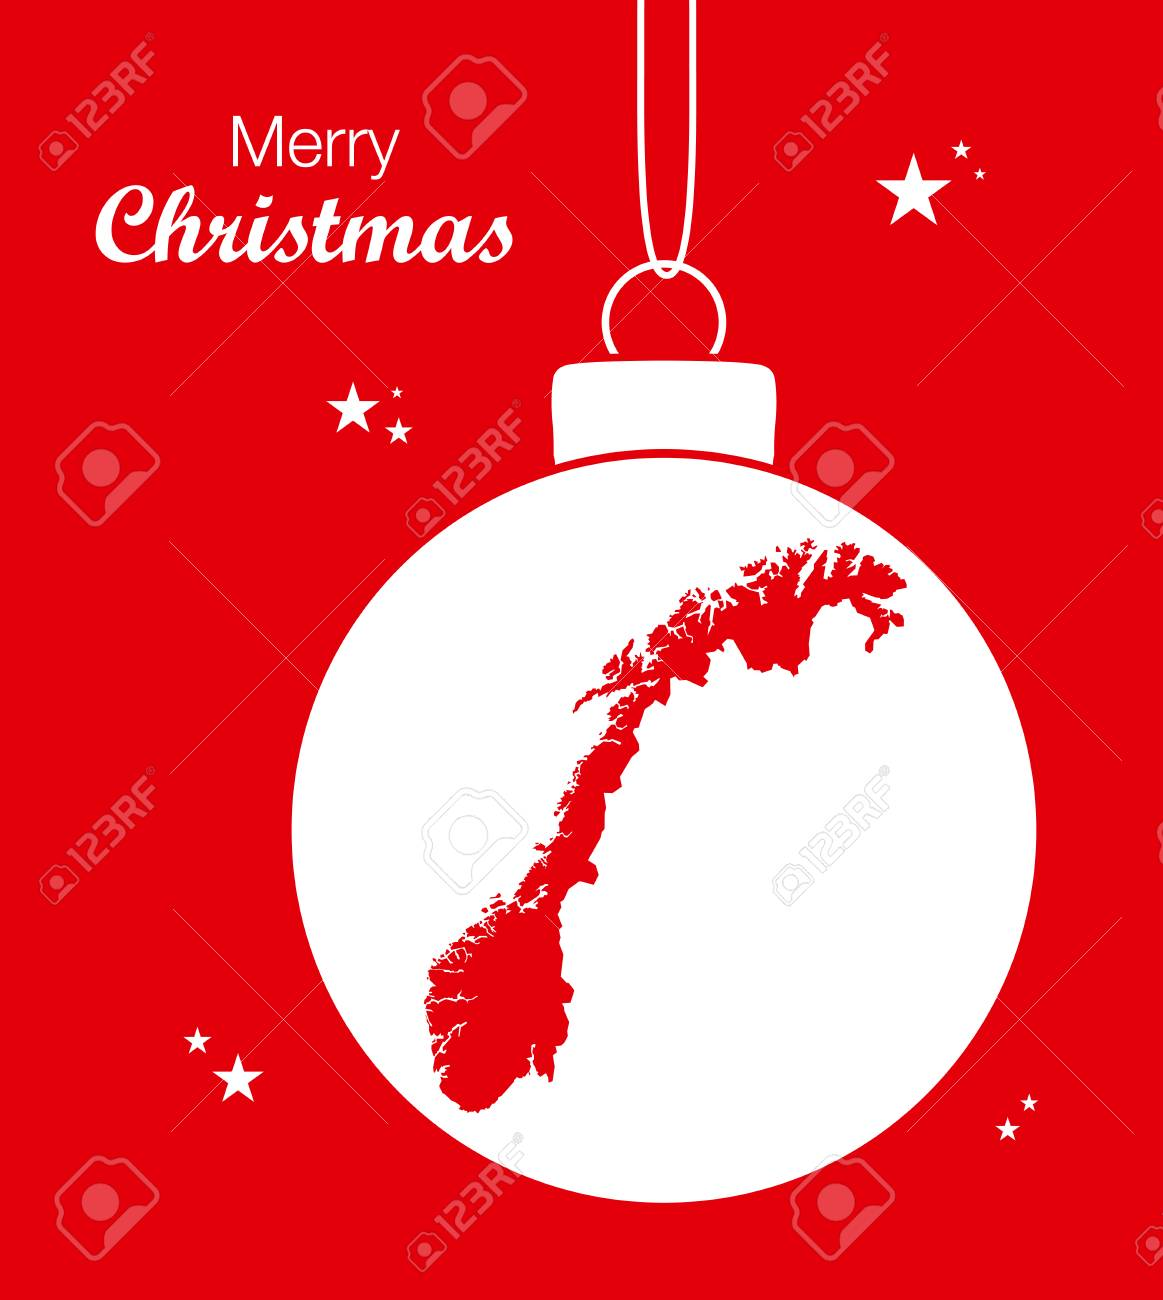 Merry Christmas In Norwegian.Merry Christmas Map Norway